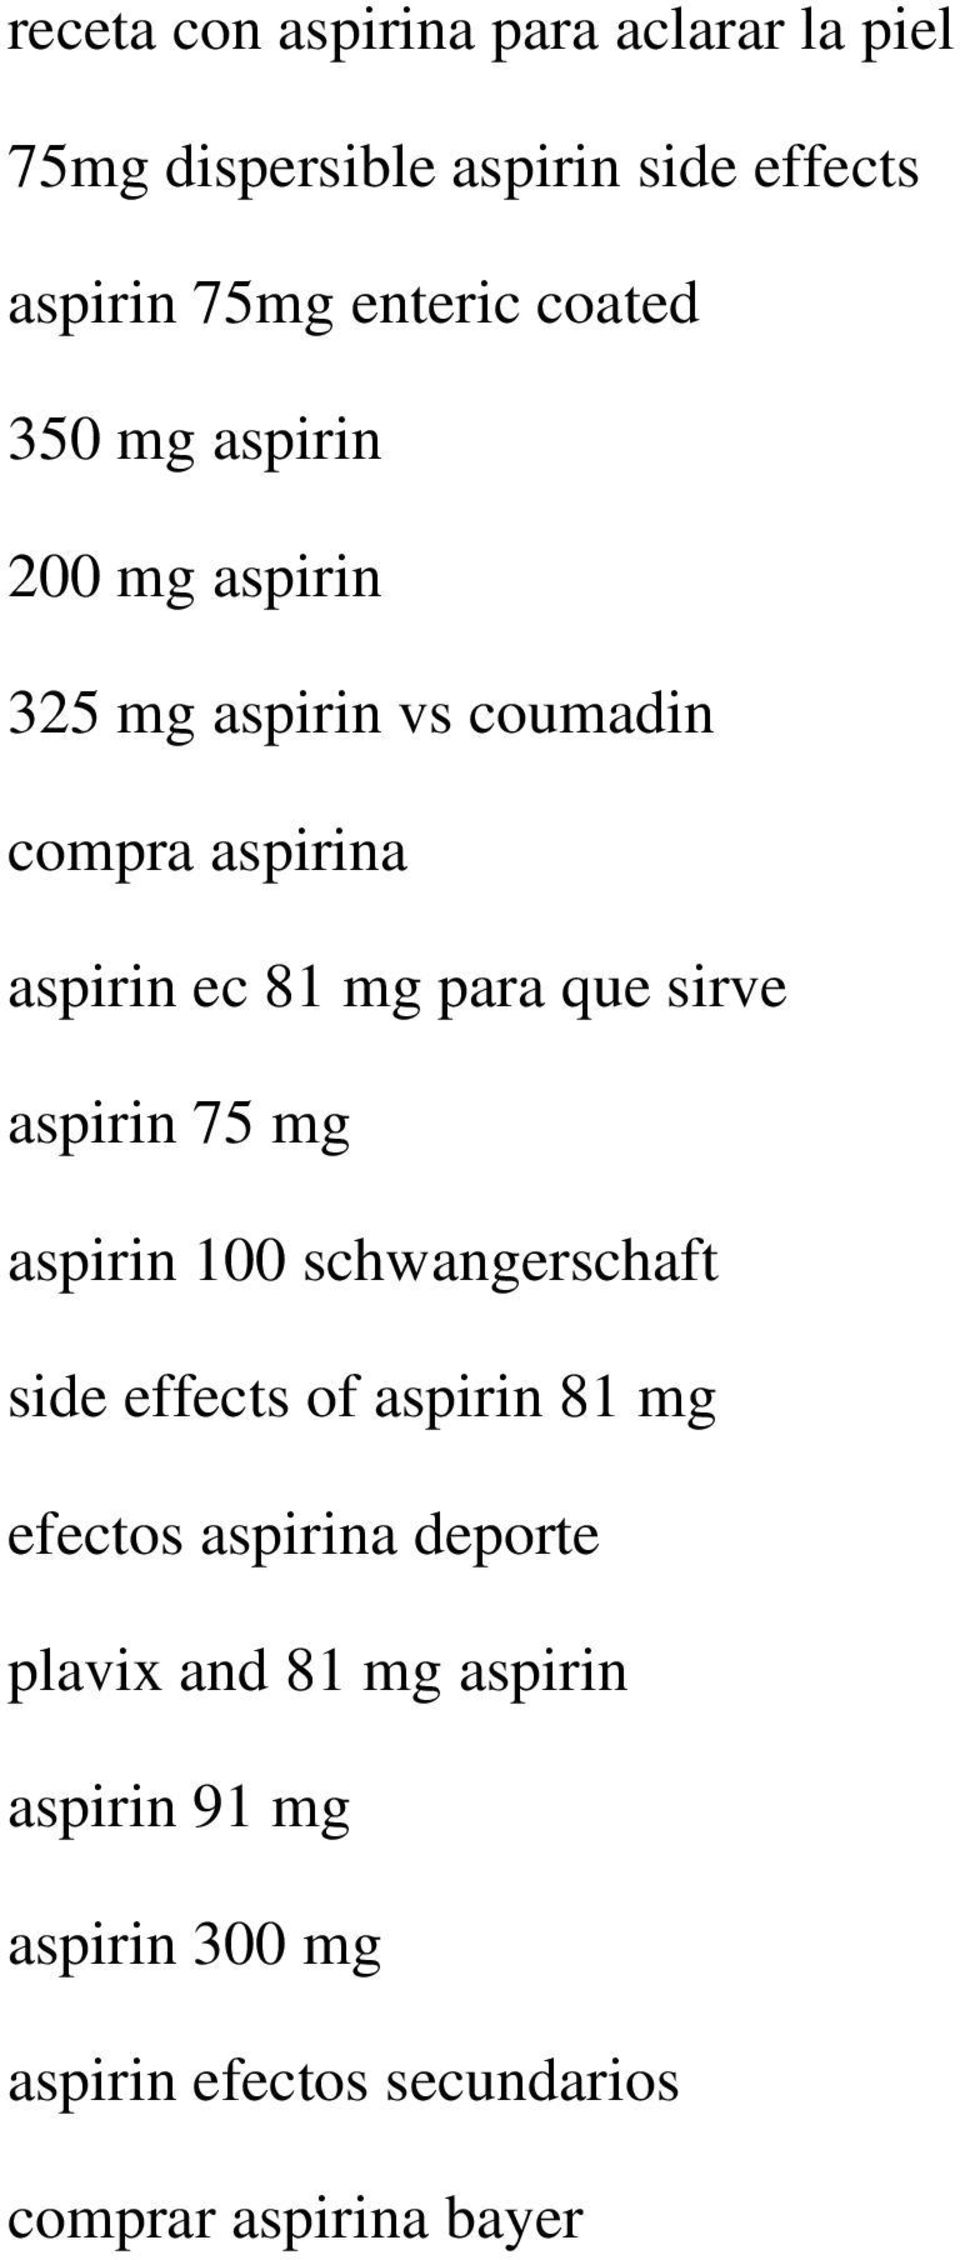 que sirve aspirin 75 mg aspirin 100 schwangerschaft side effects of aspirin 81 mg efectos aspirina